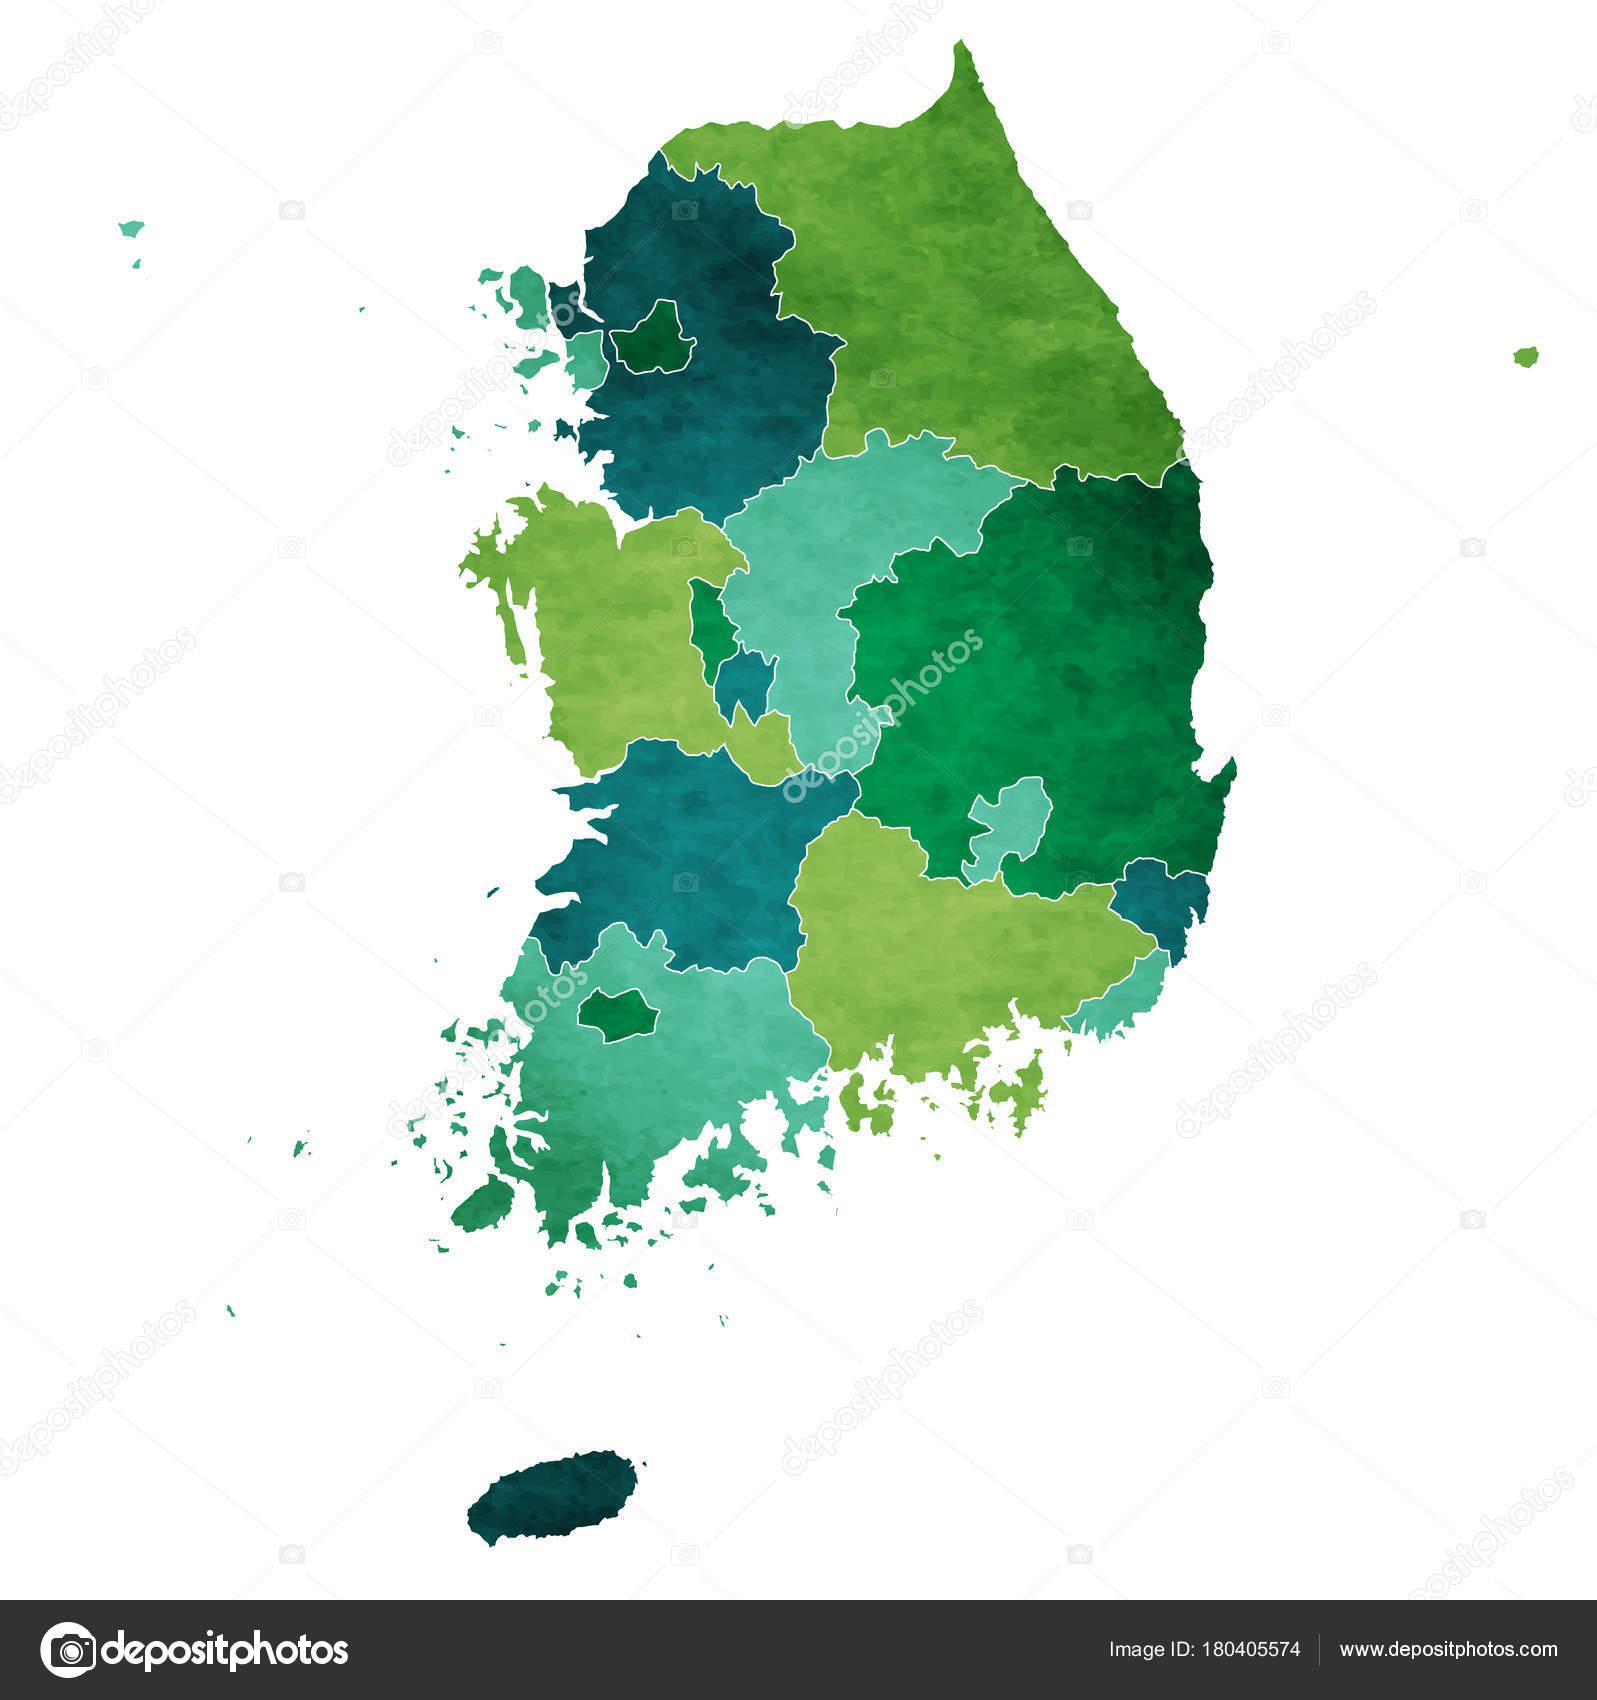 Korea world map country icon stock vector jboy24 180405574 korea world map country icon stock vector gumiabroncs Images